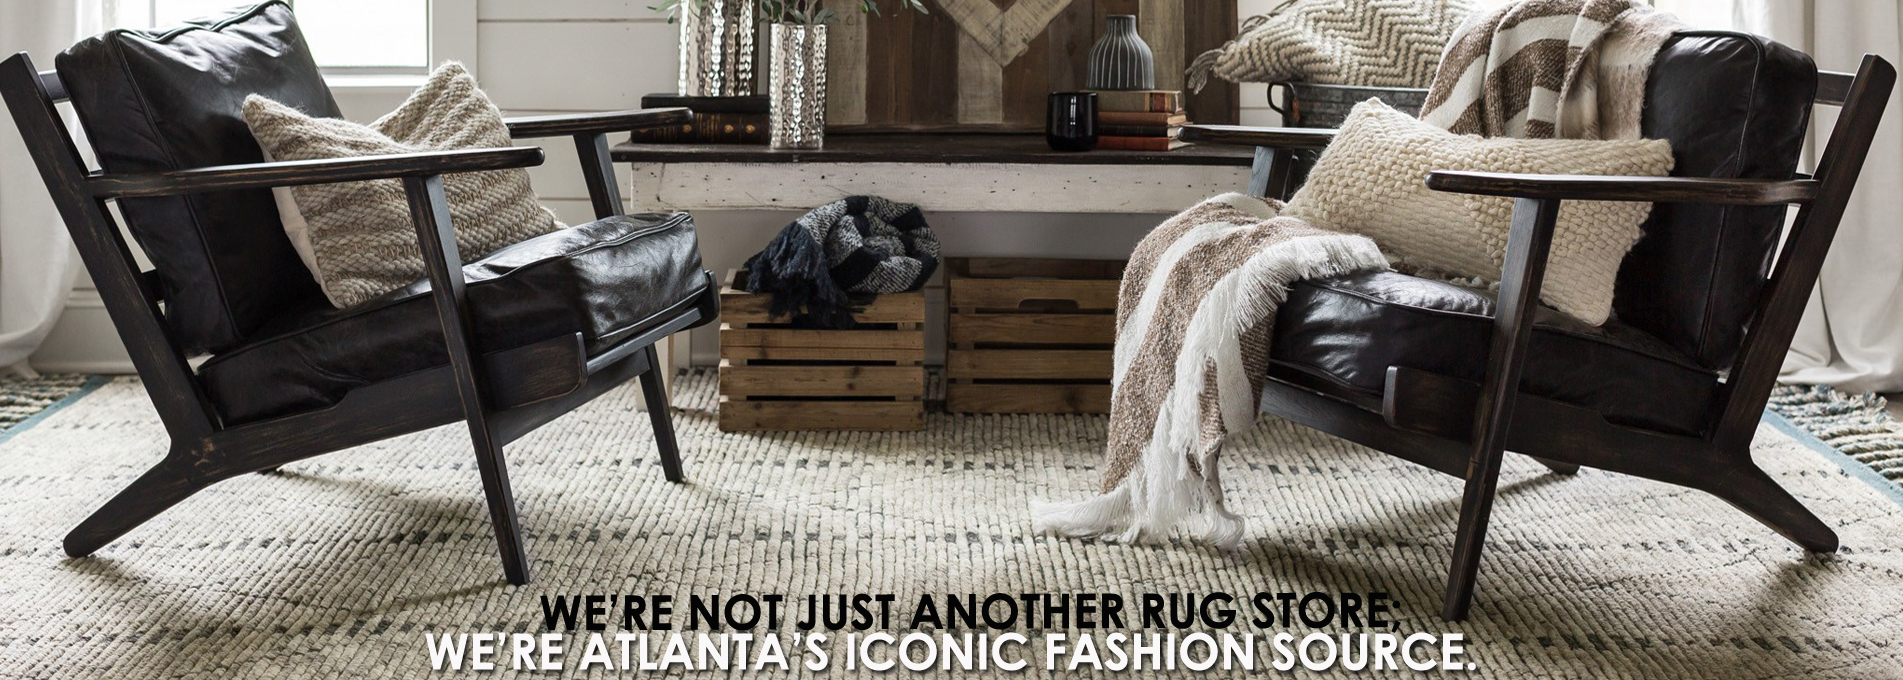 Joanna Gaines rugs, Magnolia Home rugs